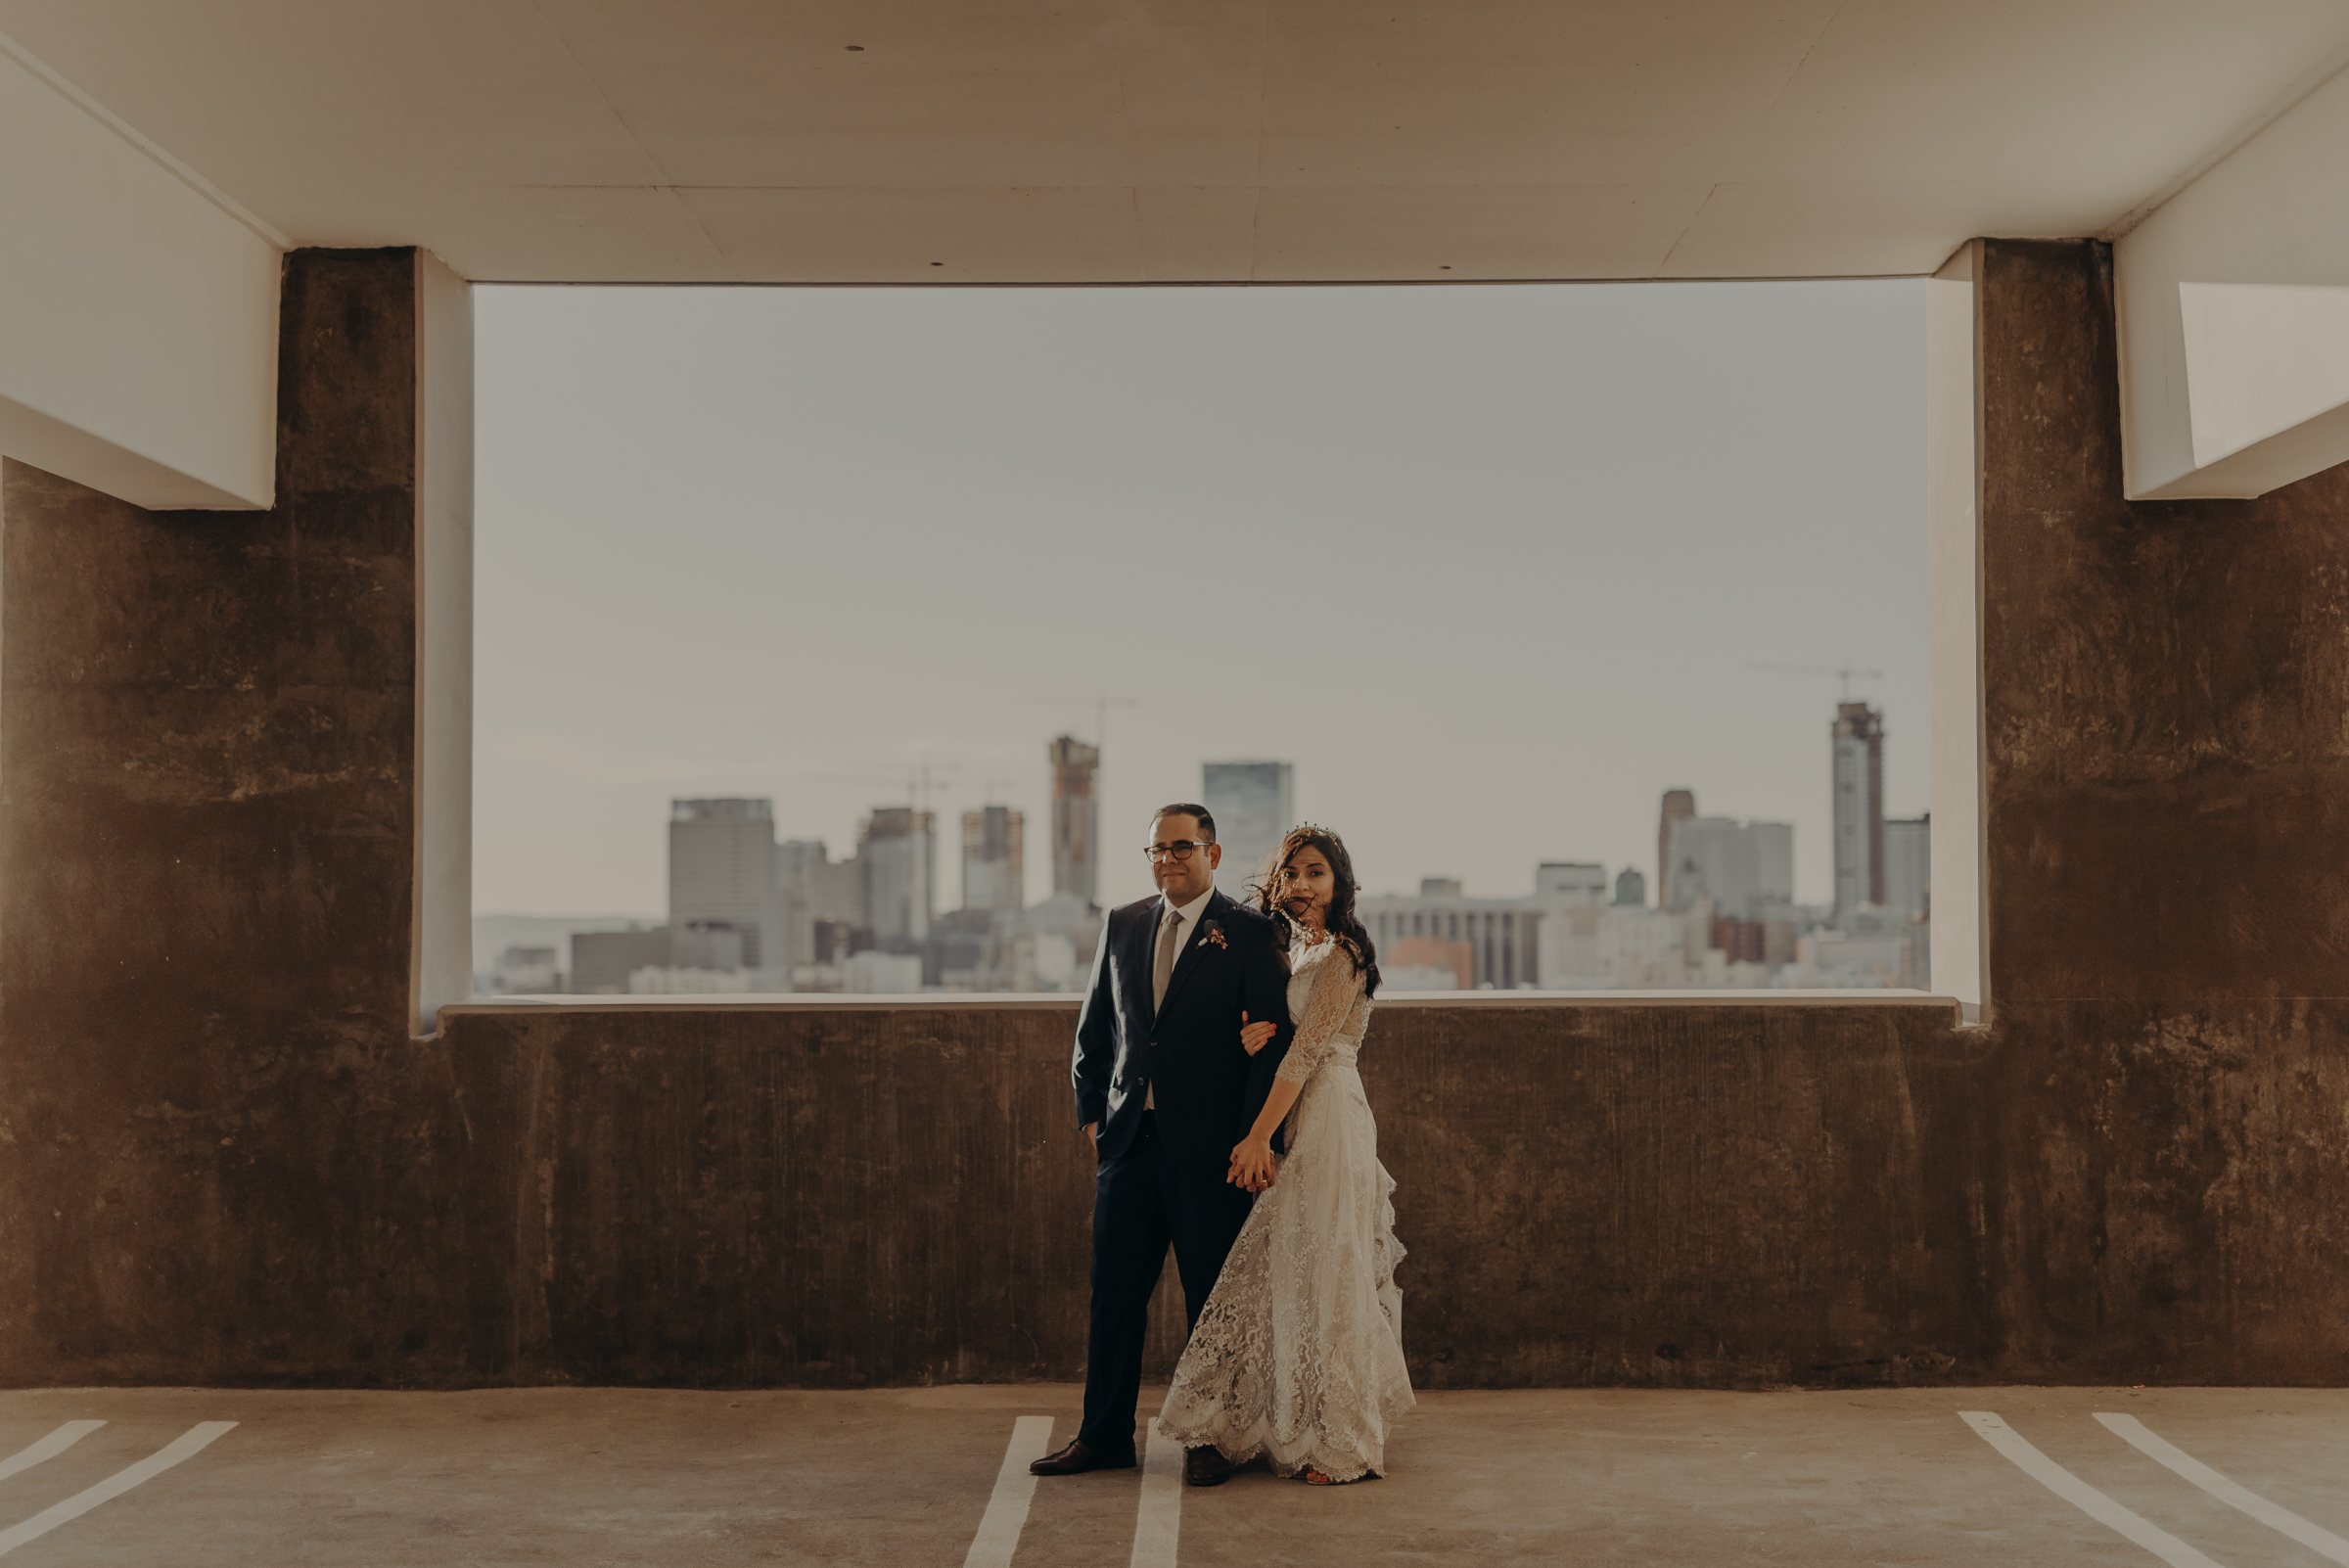 IsaiahAndTaylor.com - Downtown Los Angeles Wedding Photographer - Millwick Wedding - Smog Shoppe-049.jpg